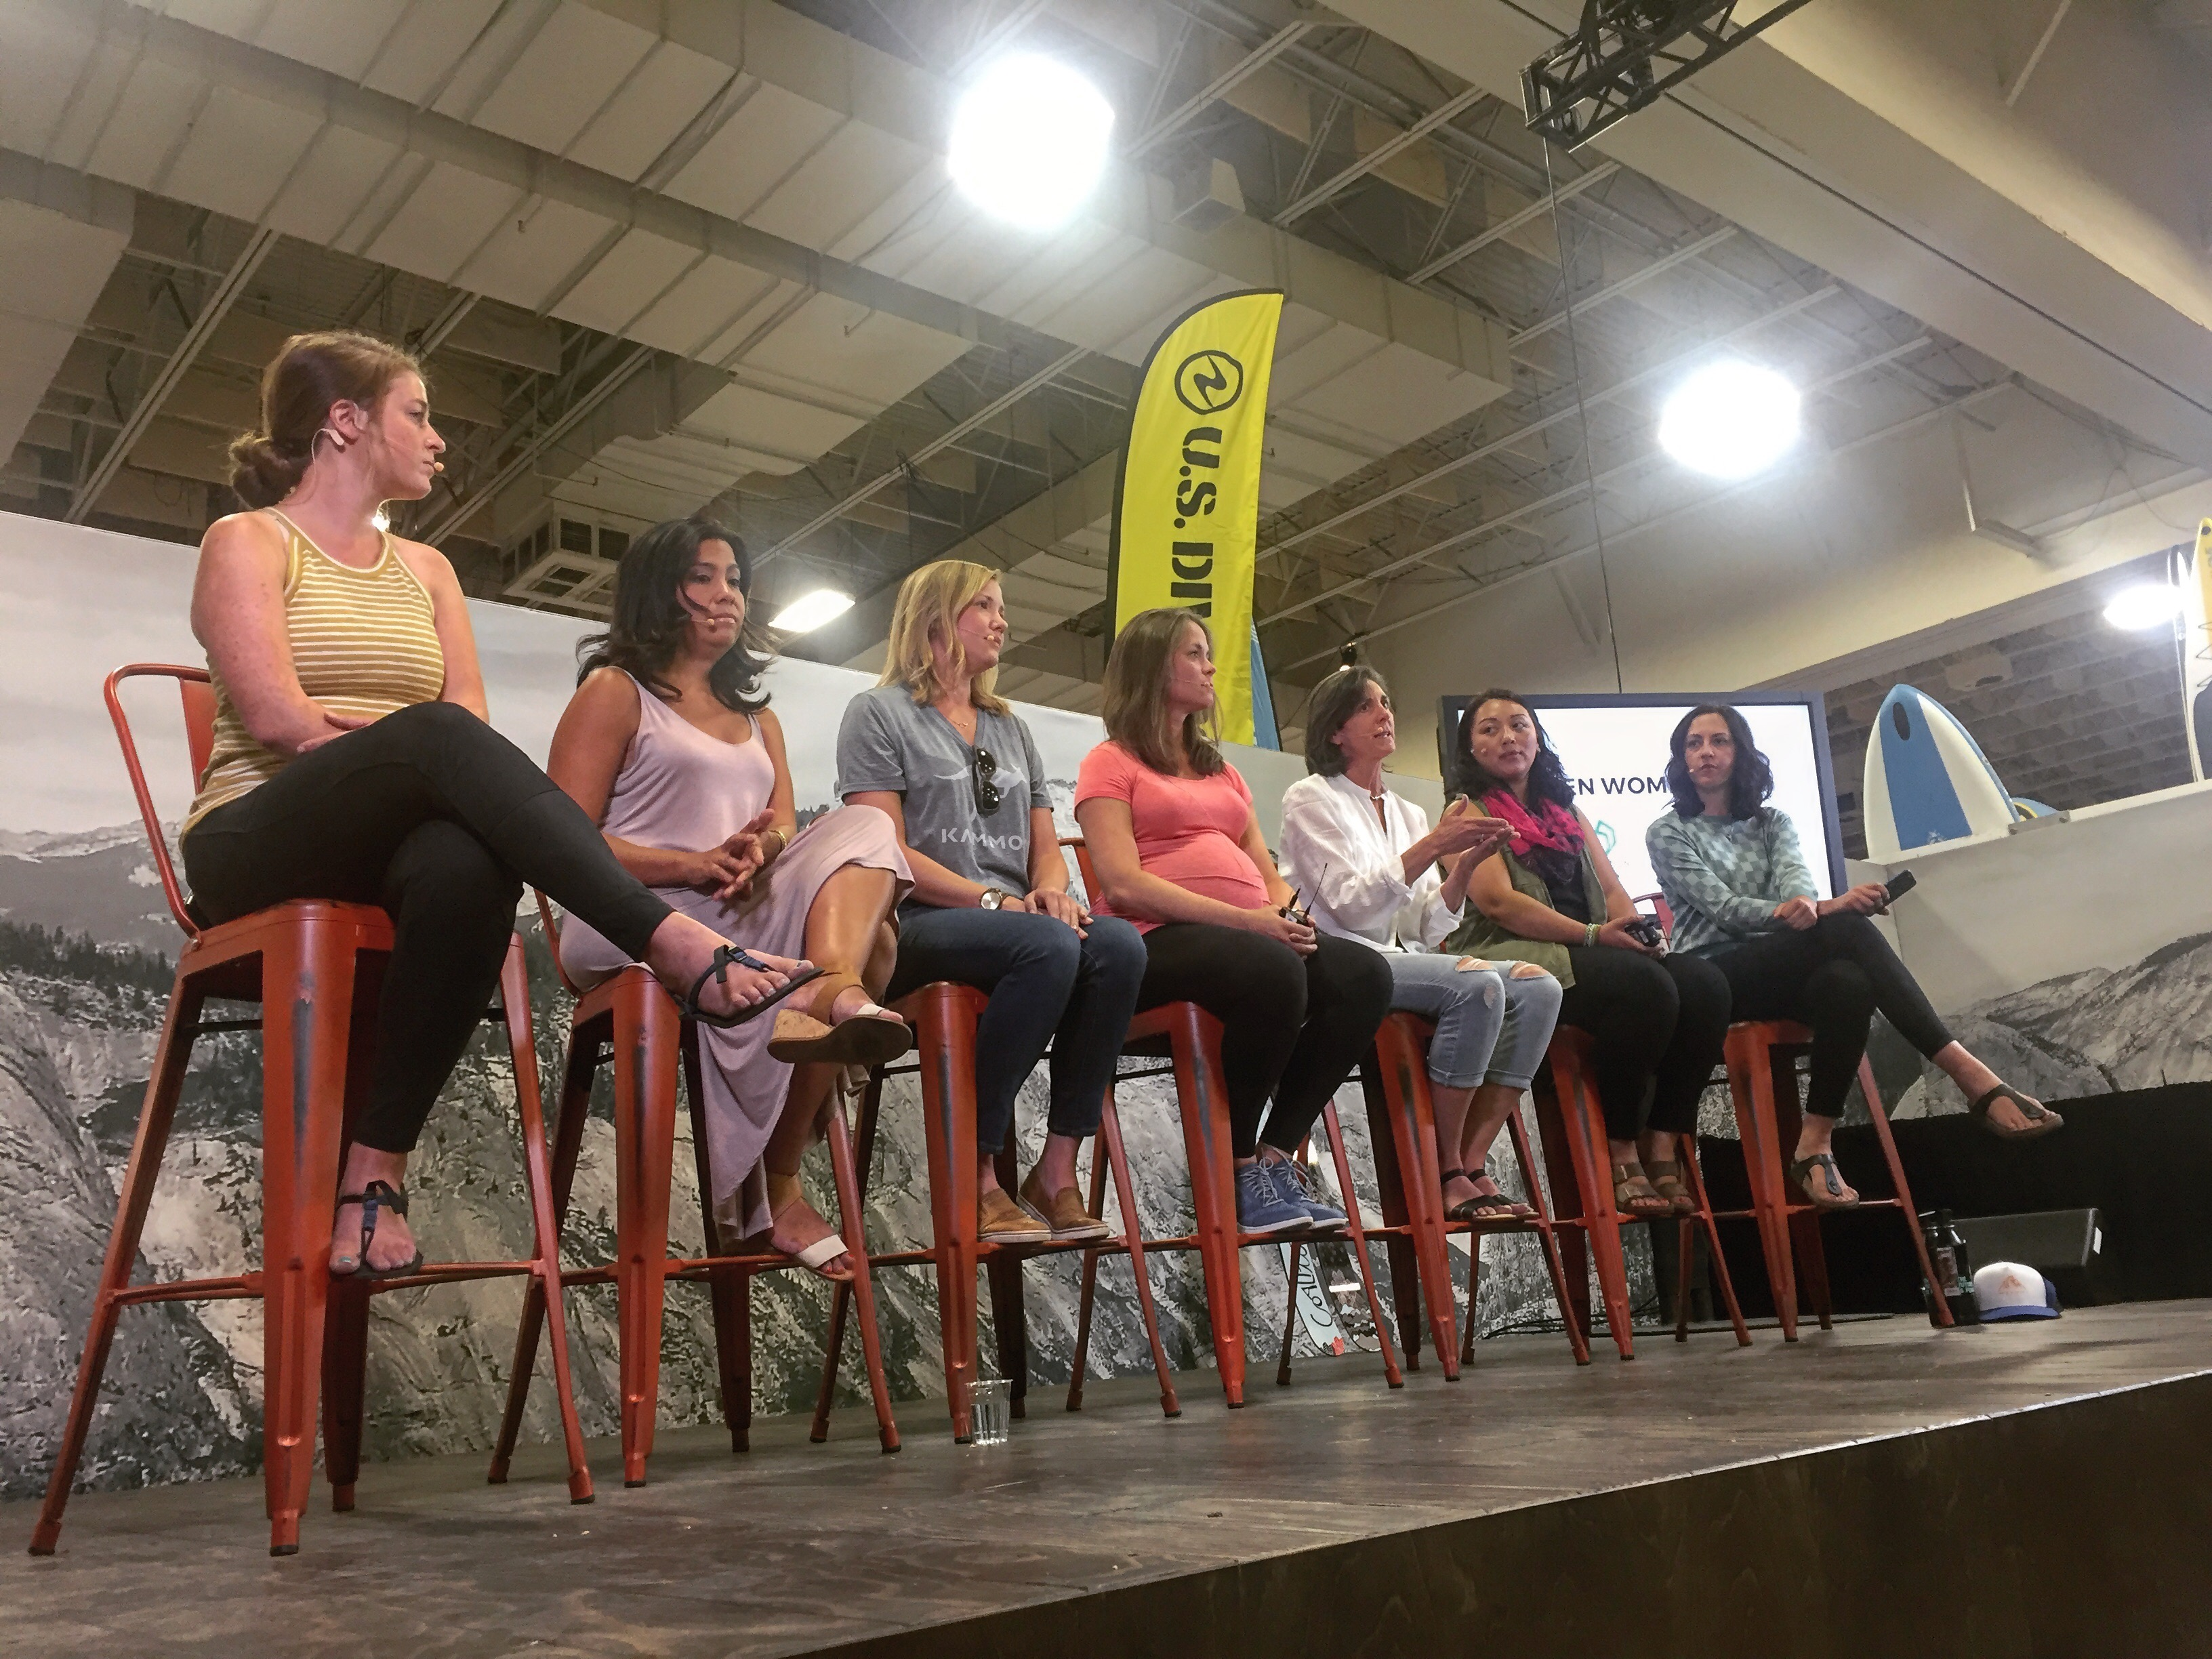 The When Women Lead panel, from left to right: Amanda Goad, founder of Wild Women's Project; Georgina Miranda, CEO of Altitude Seven; Haley Robison, CEO of Kammok; Heather Rochfort, founder of JustAColoradoGal.com; Jennifer Vierling, co-founder of Tailwind Nutrition; Tsedo Sherpa-Ednalino, COO of Sherpa Adventure Gear; and Jen Gurecki, co-founder and CEO of Coalition Snow. [Photo] Emma Murray